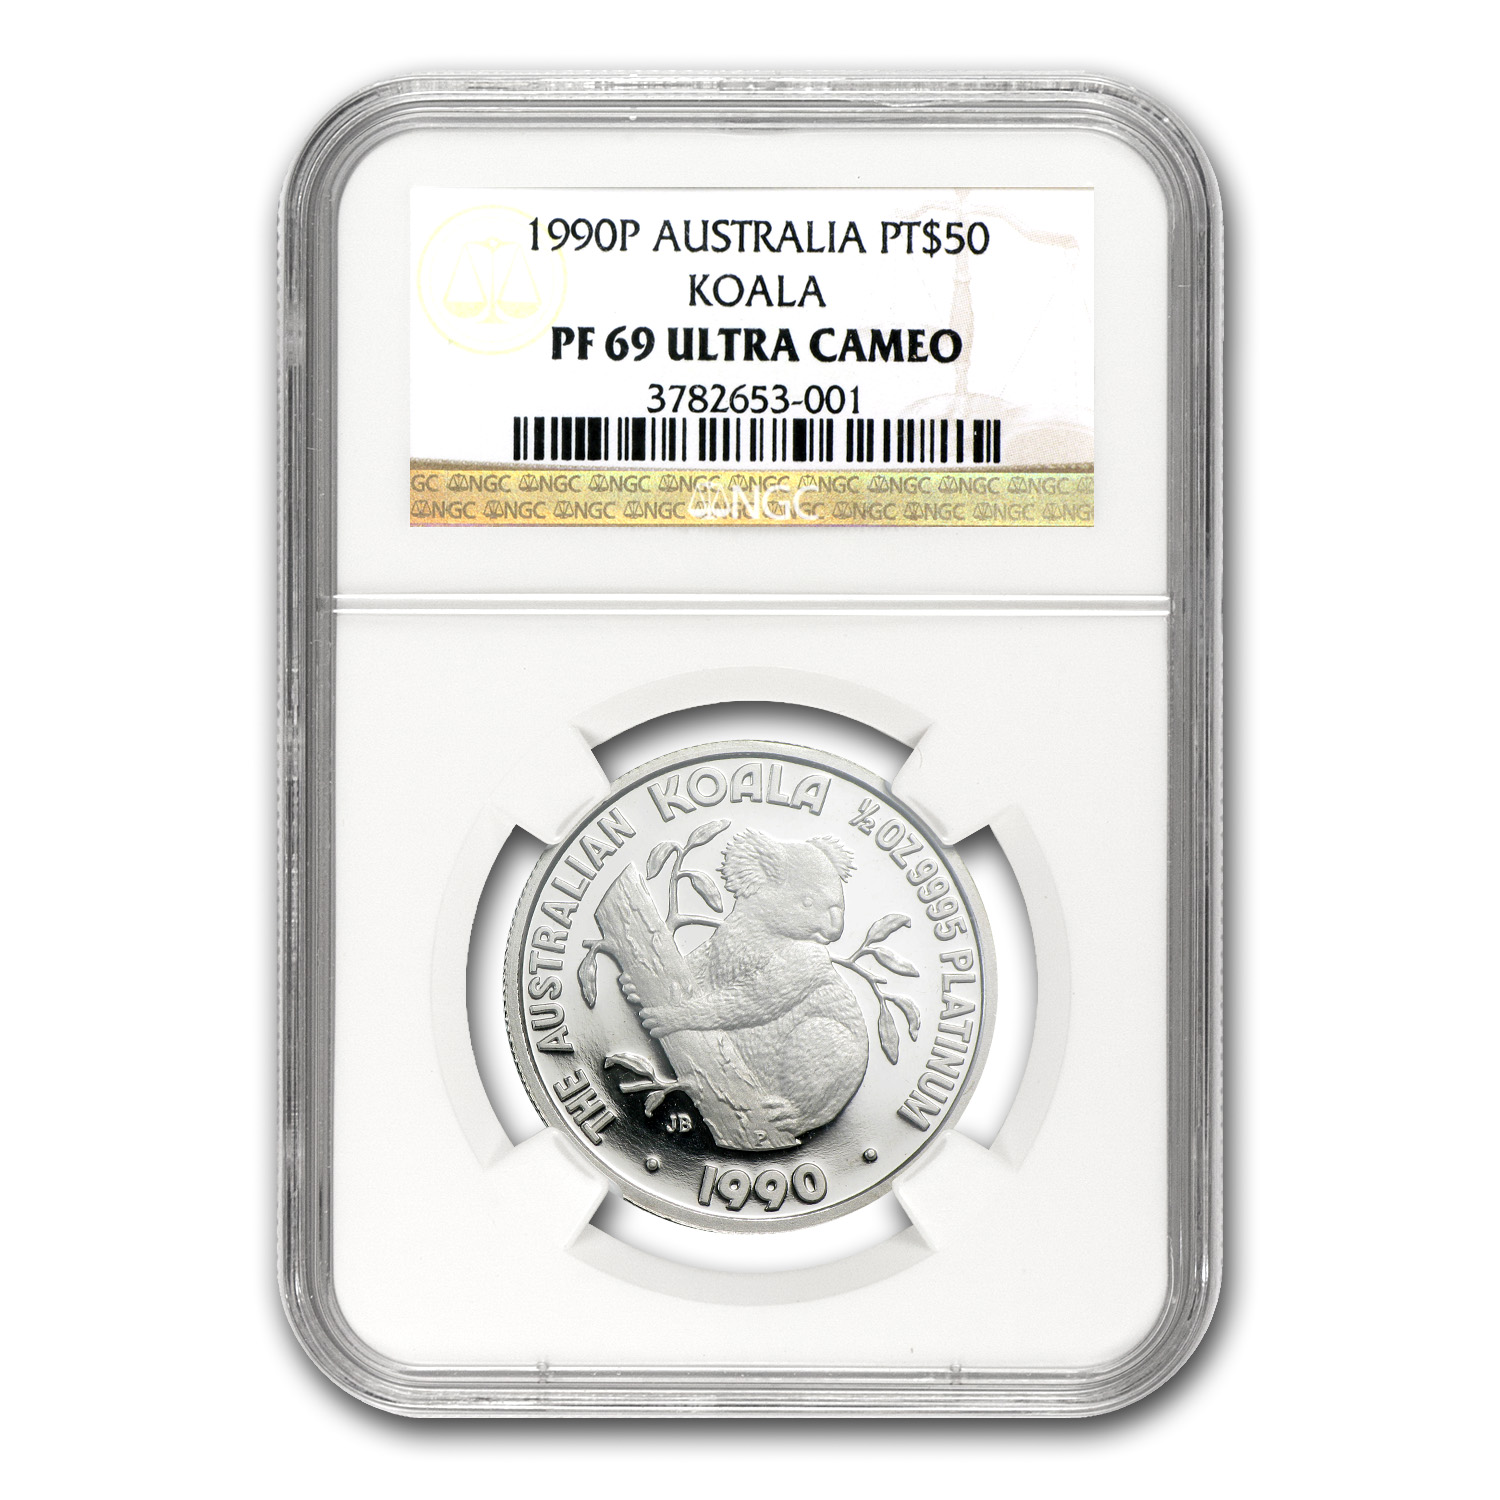 1990 Australia 1/2 oz Proof Platinum Koala PF-69 NGC